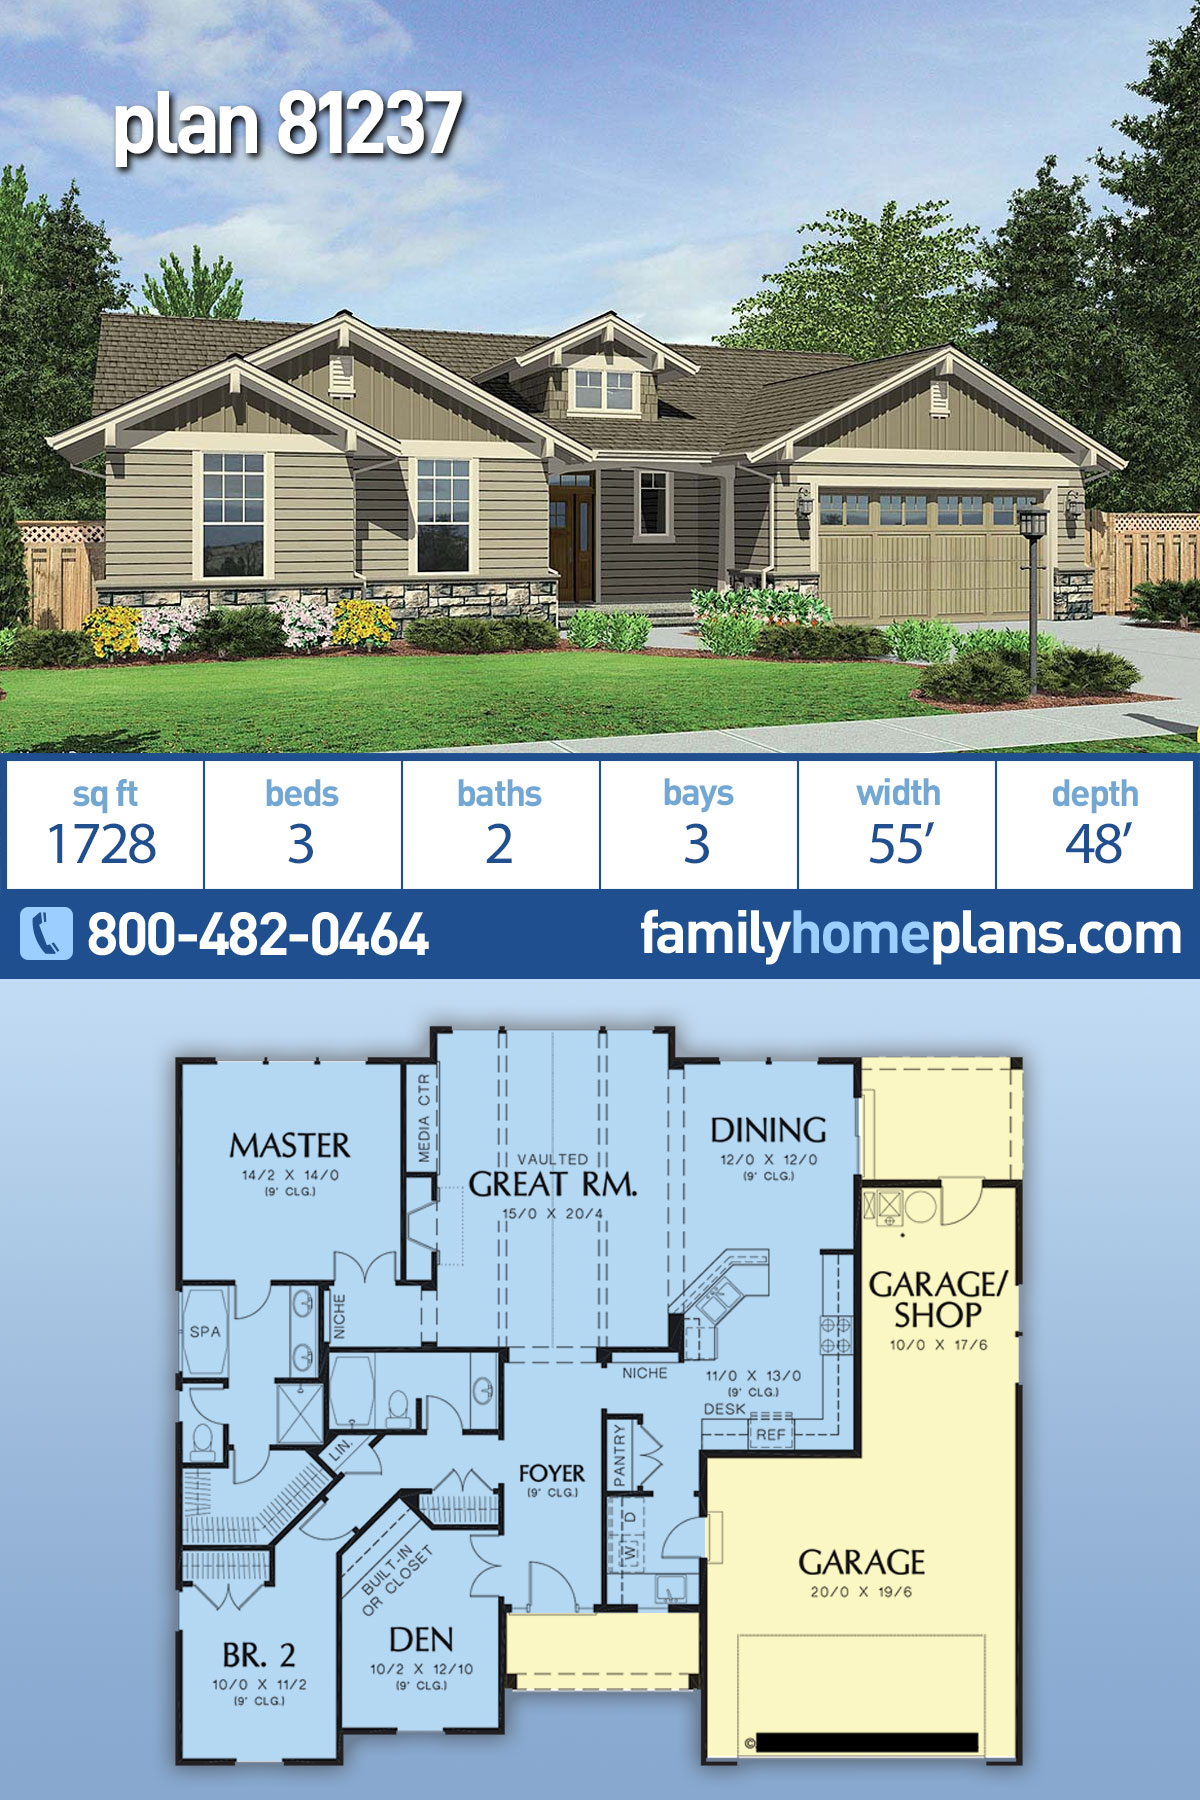 Craftsman House Plan 81237 with 3 Beds, 2 Baths, 3 Car Garage